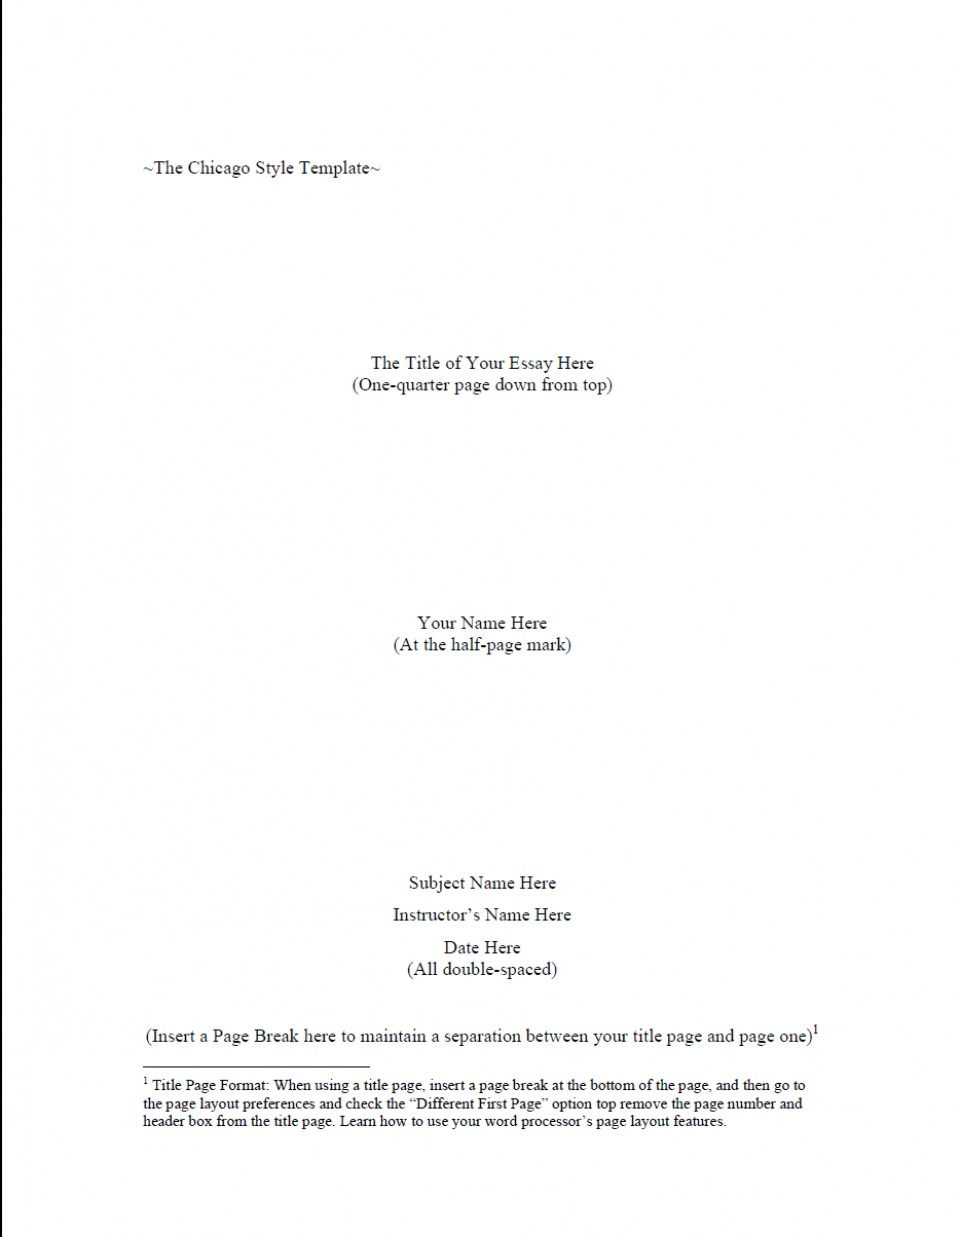 028 Research Paper Chicago Style In Text Citation Sample Paper1 Wondrous 960